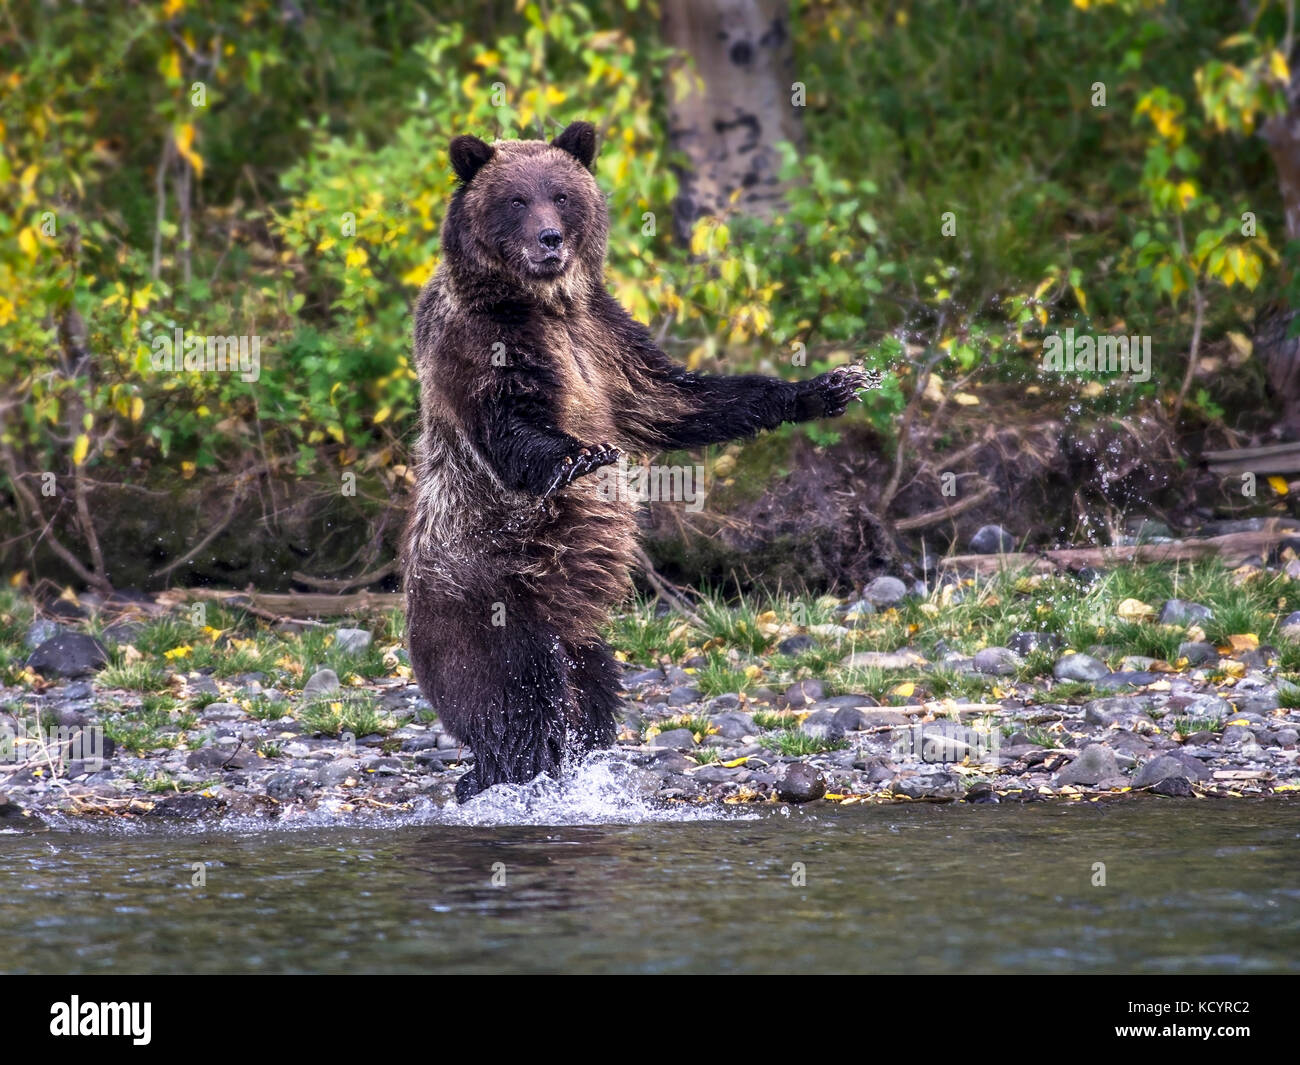 Grizzly Bear (Ursus arctos horribilis), Adult, startled and standing on edge of slamon stream, Fall, Autumn, Central - Stock Image